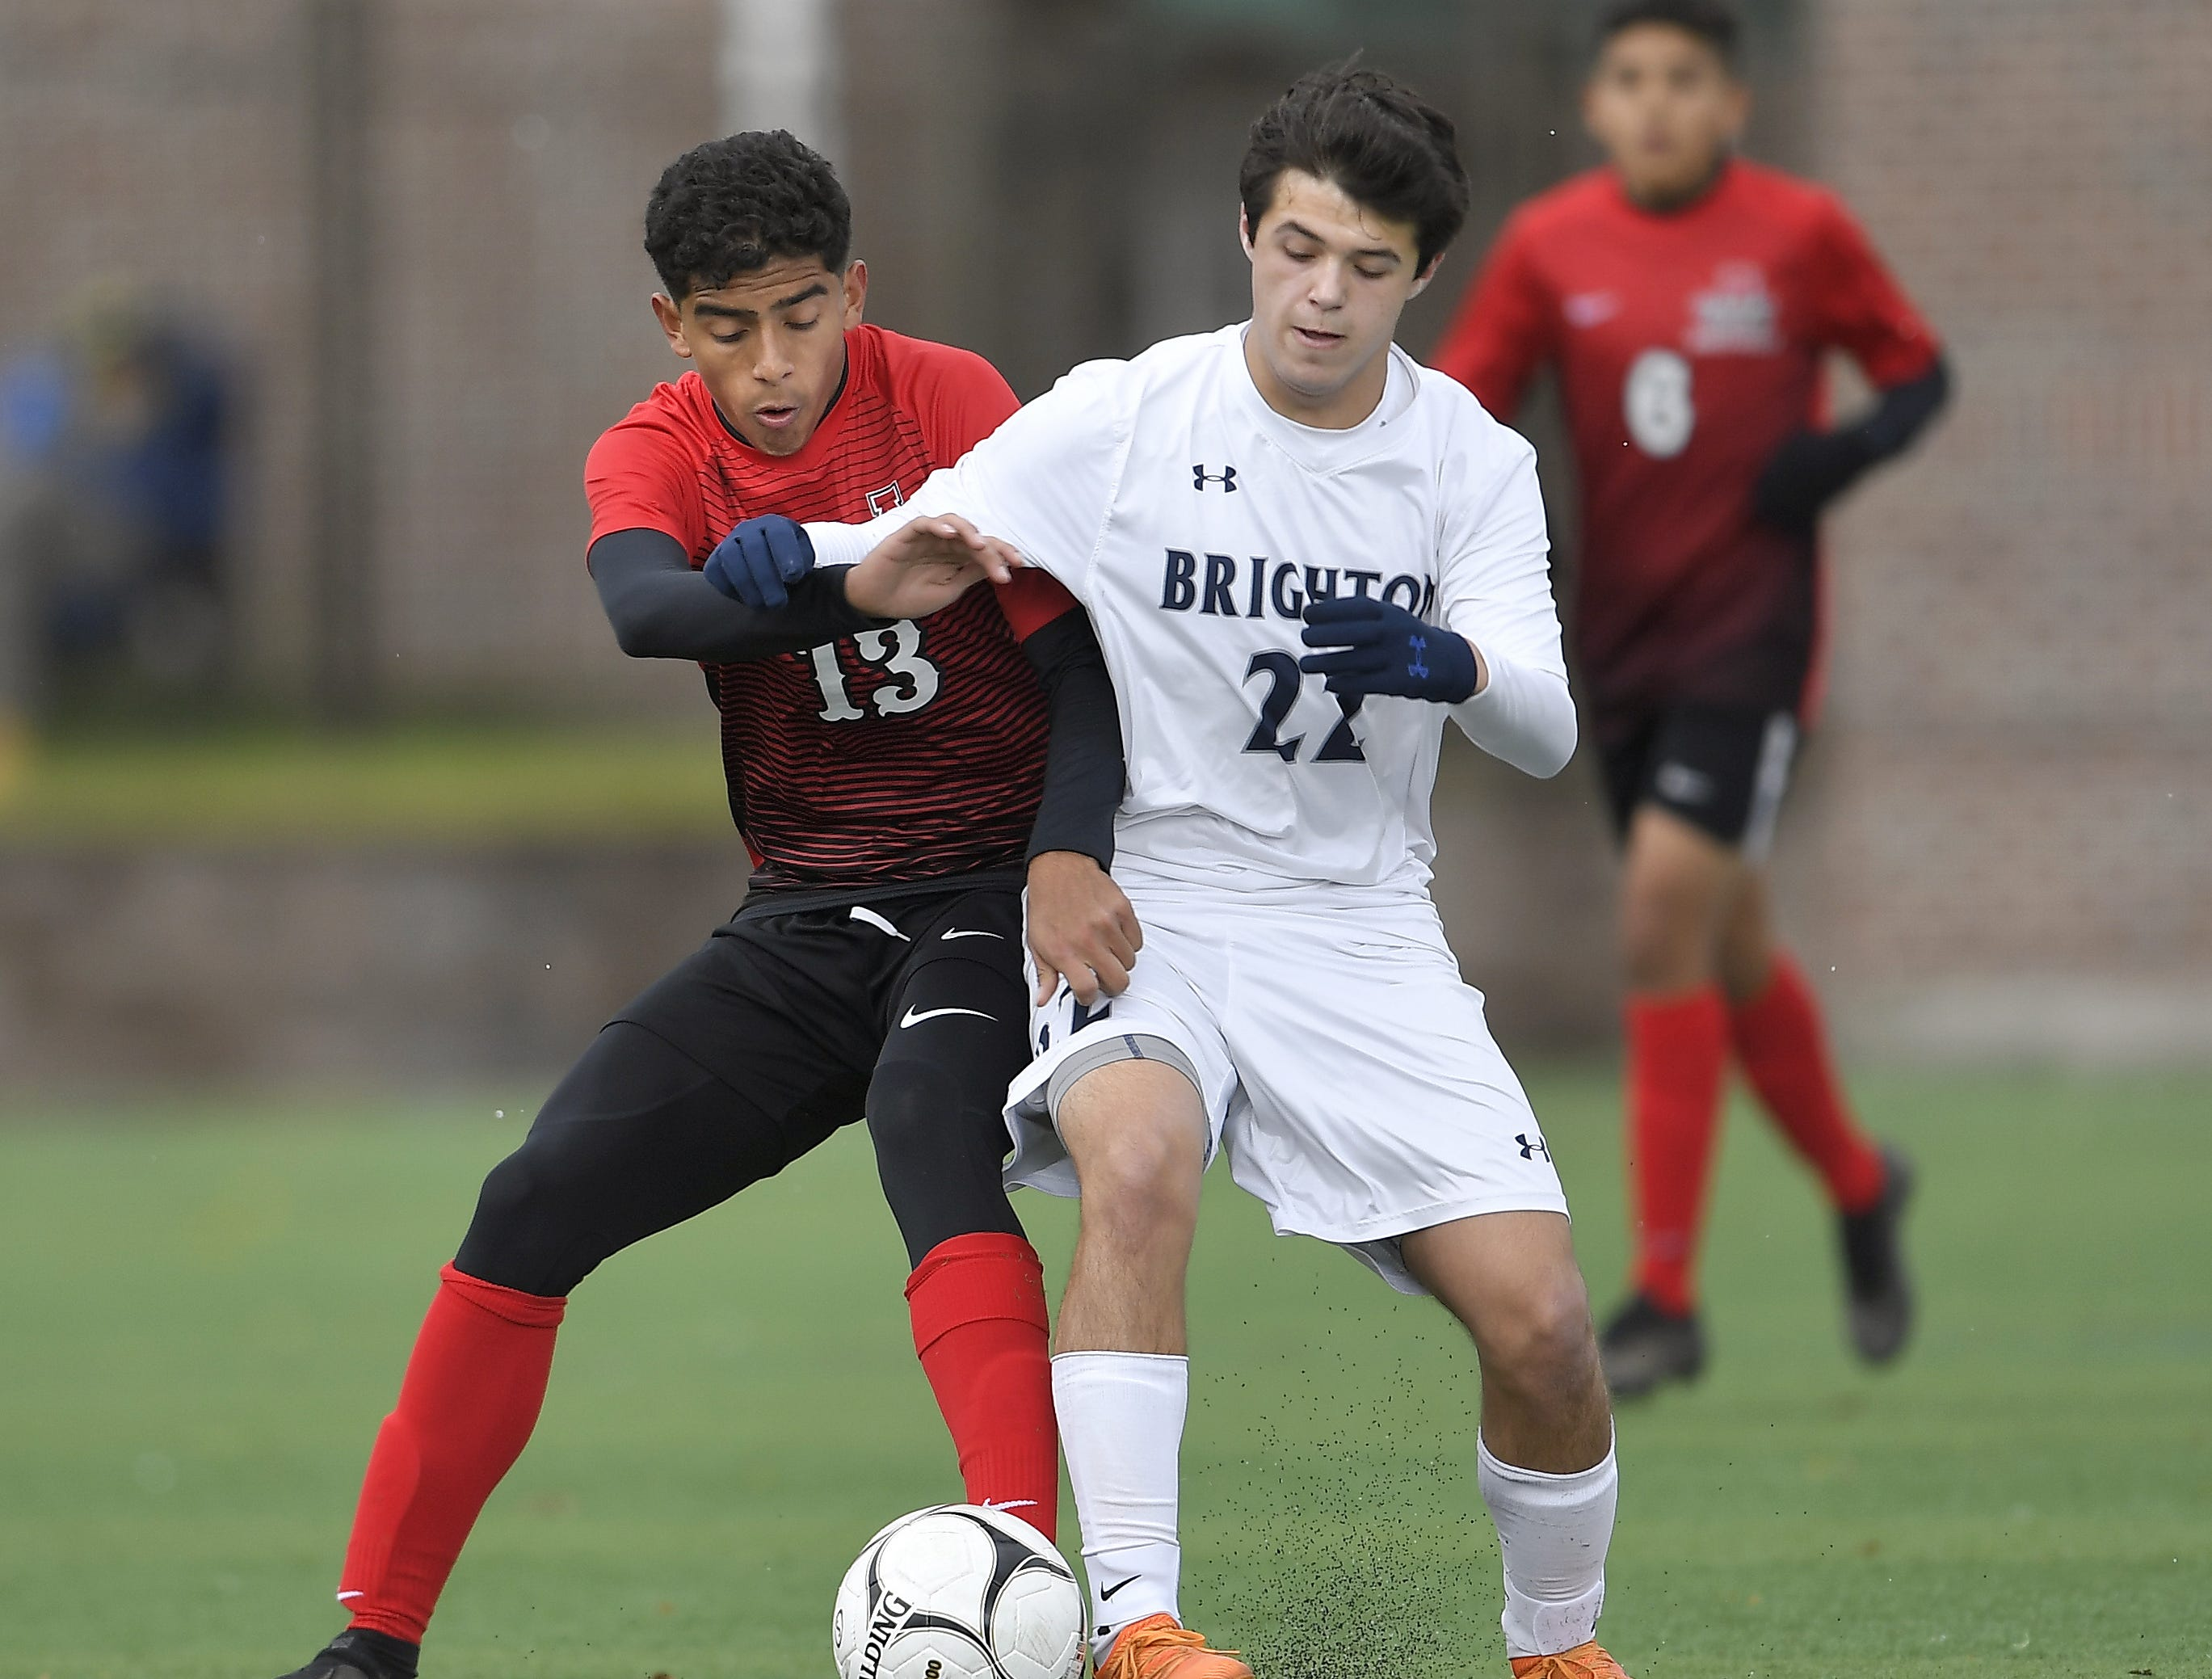 Brighton's Nico Leone, right, and Amityville's Rolman Guardado challenge for the ball during a Class A semifinal at the NYSPHSAA Boys Soccer Championships in Newburgh, N.Y., Saturday, Nov. 10, 2018.